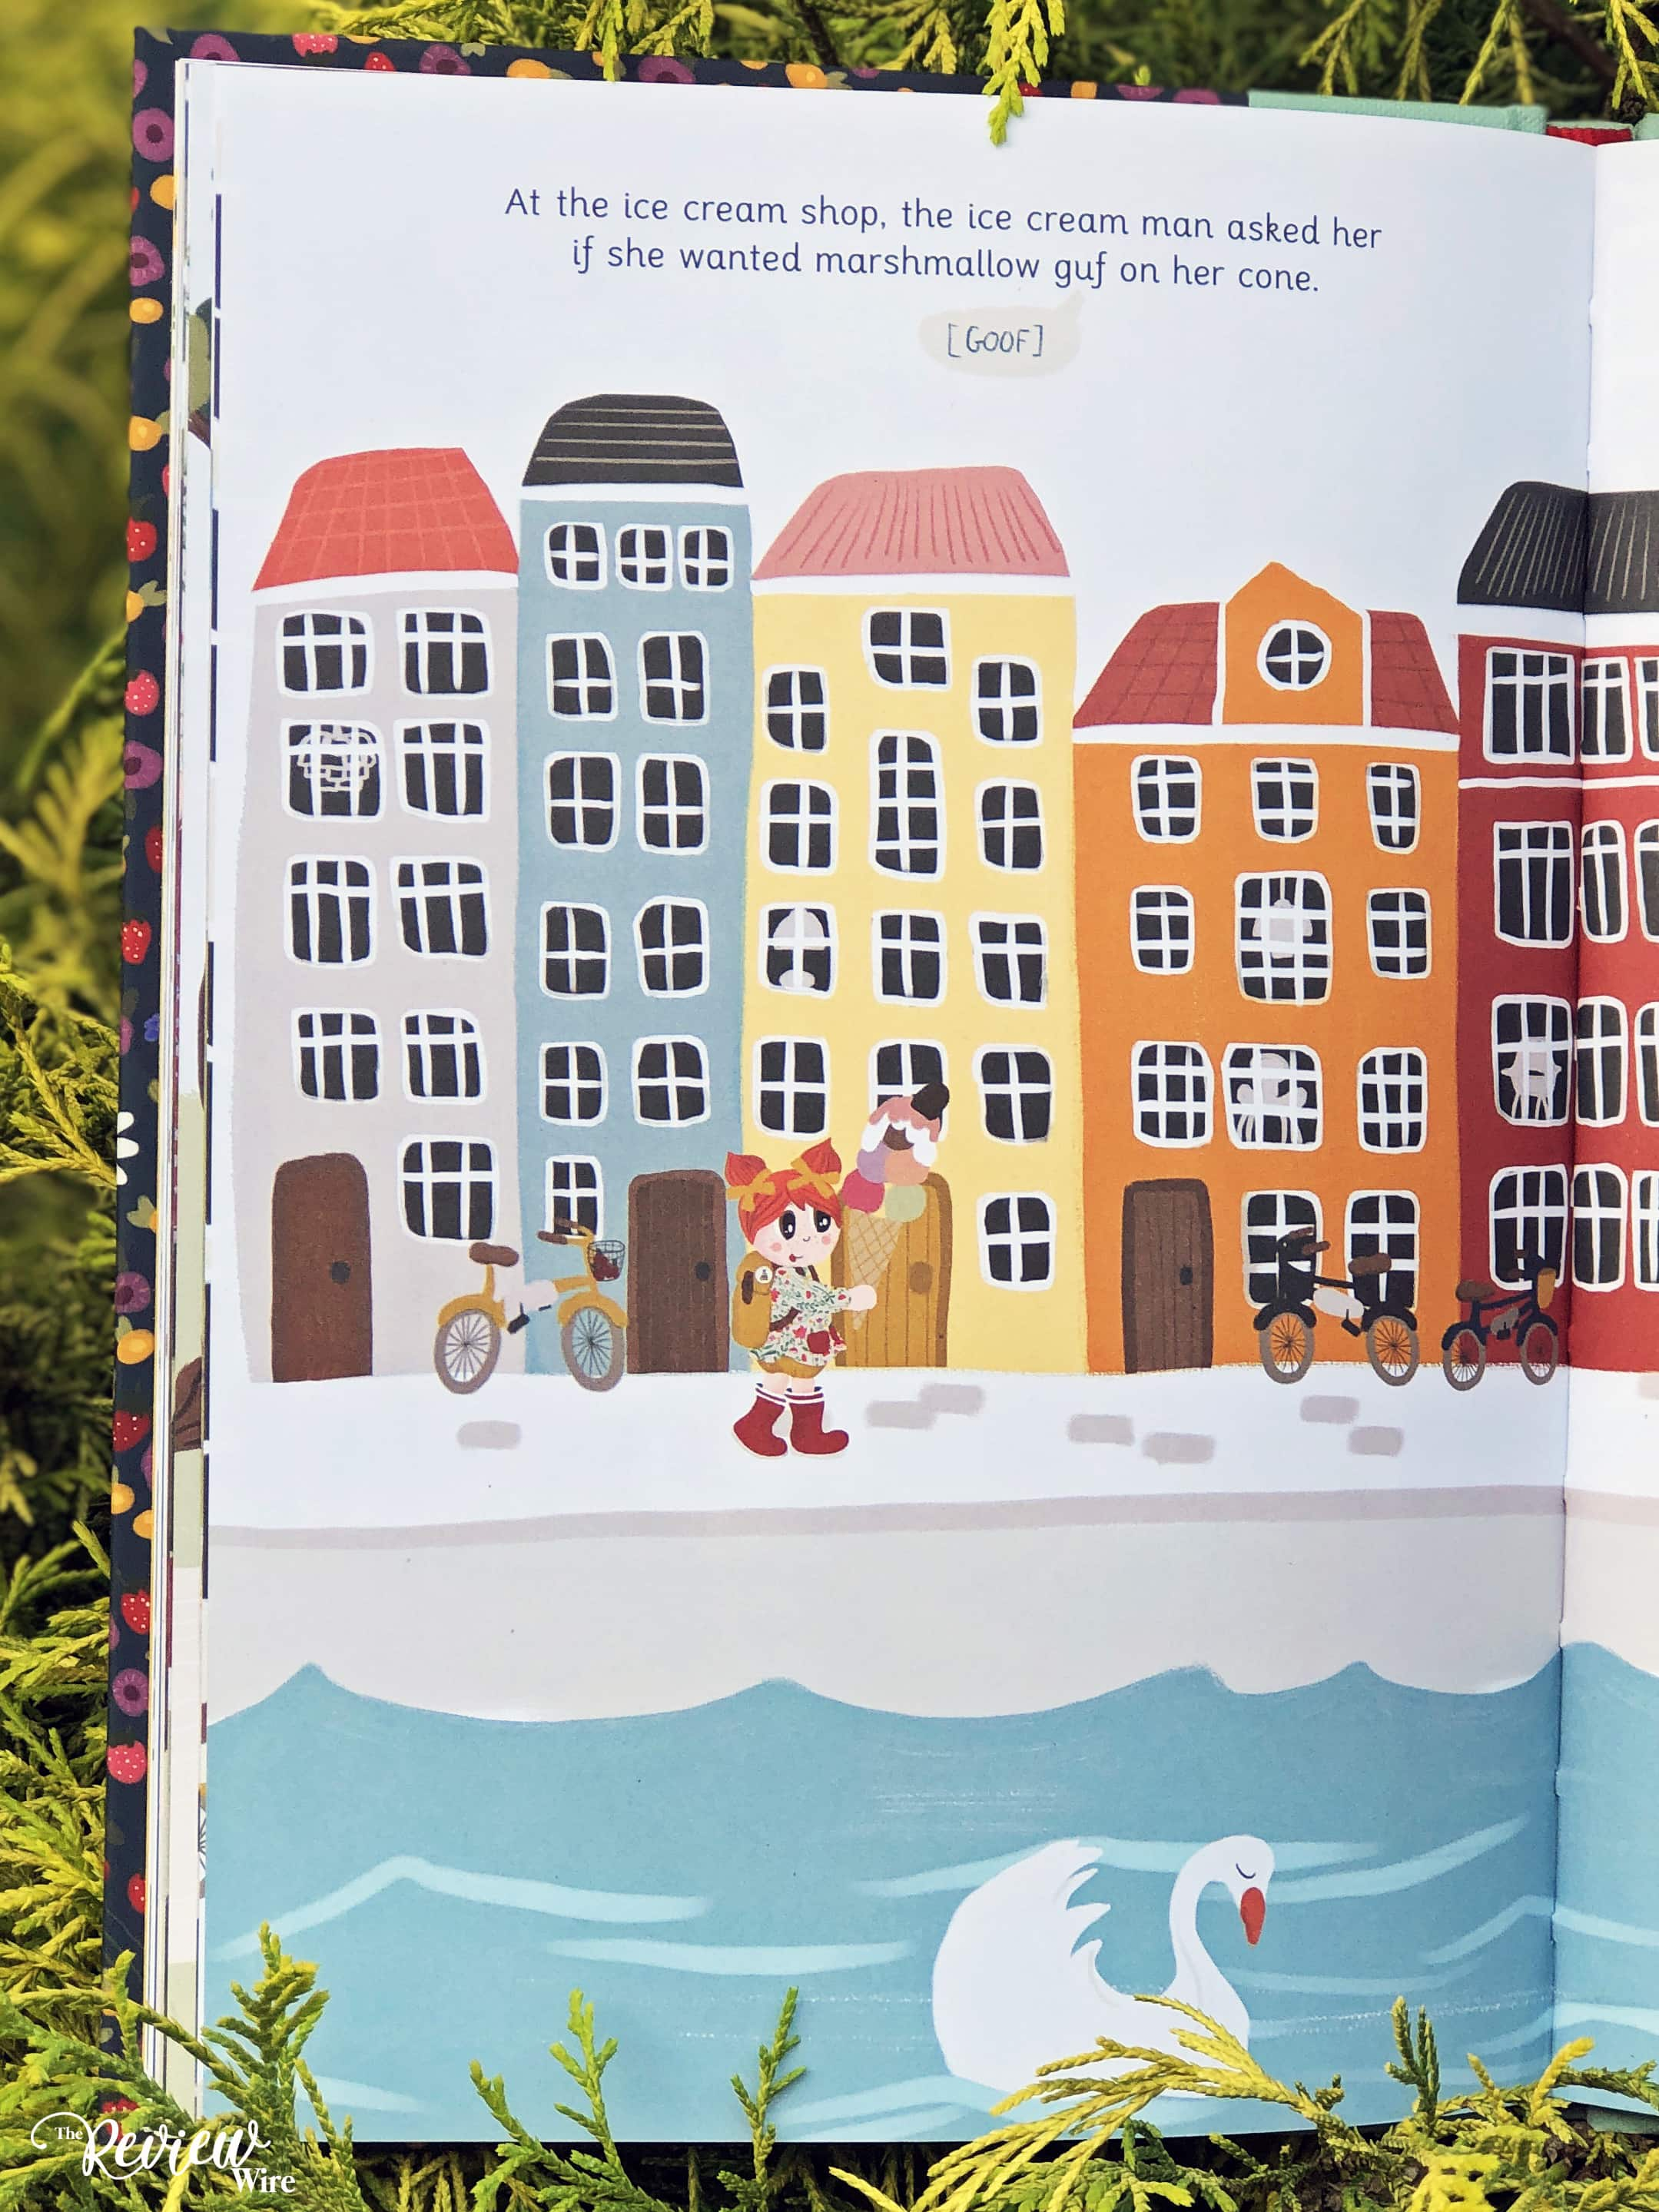 The Review Wire: The Adventures of Lily Huckleberry in Scandinavia - Pg 36